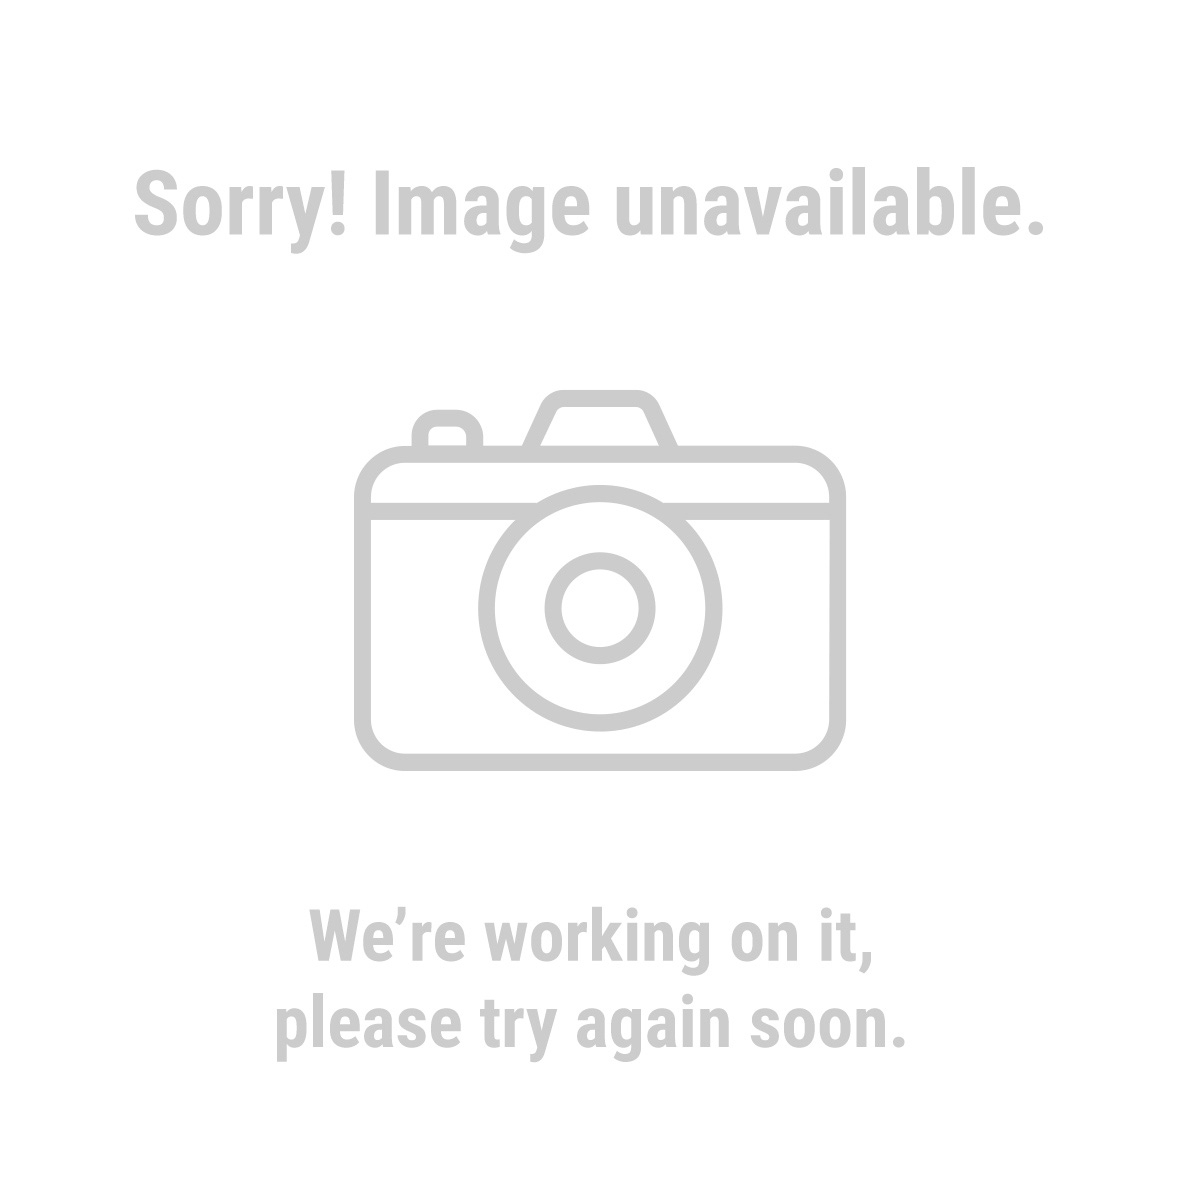 HFT 8857 10 Ft. x 16 Gauge Outdoor Extension Cord